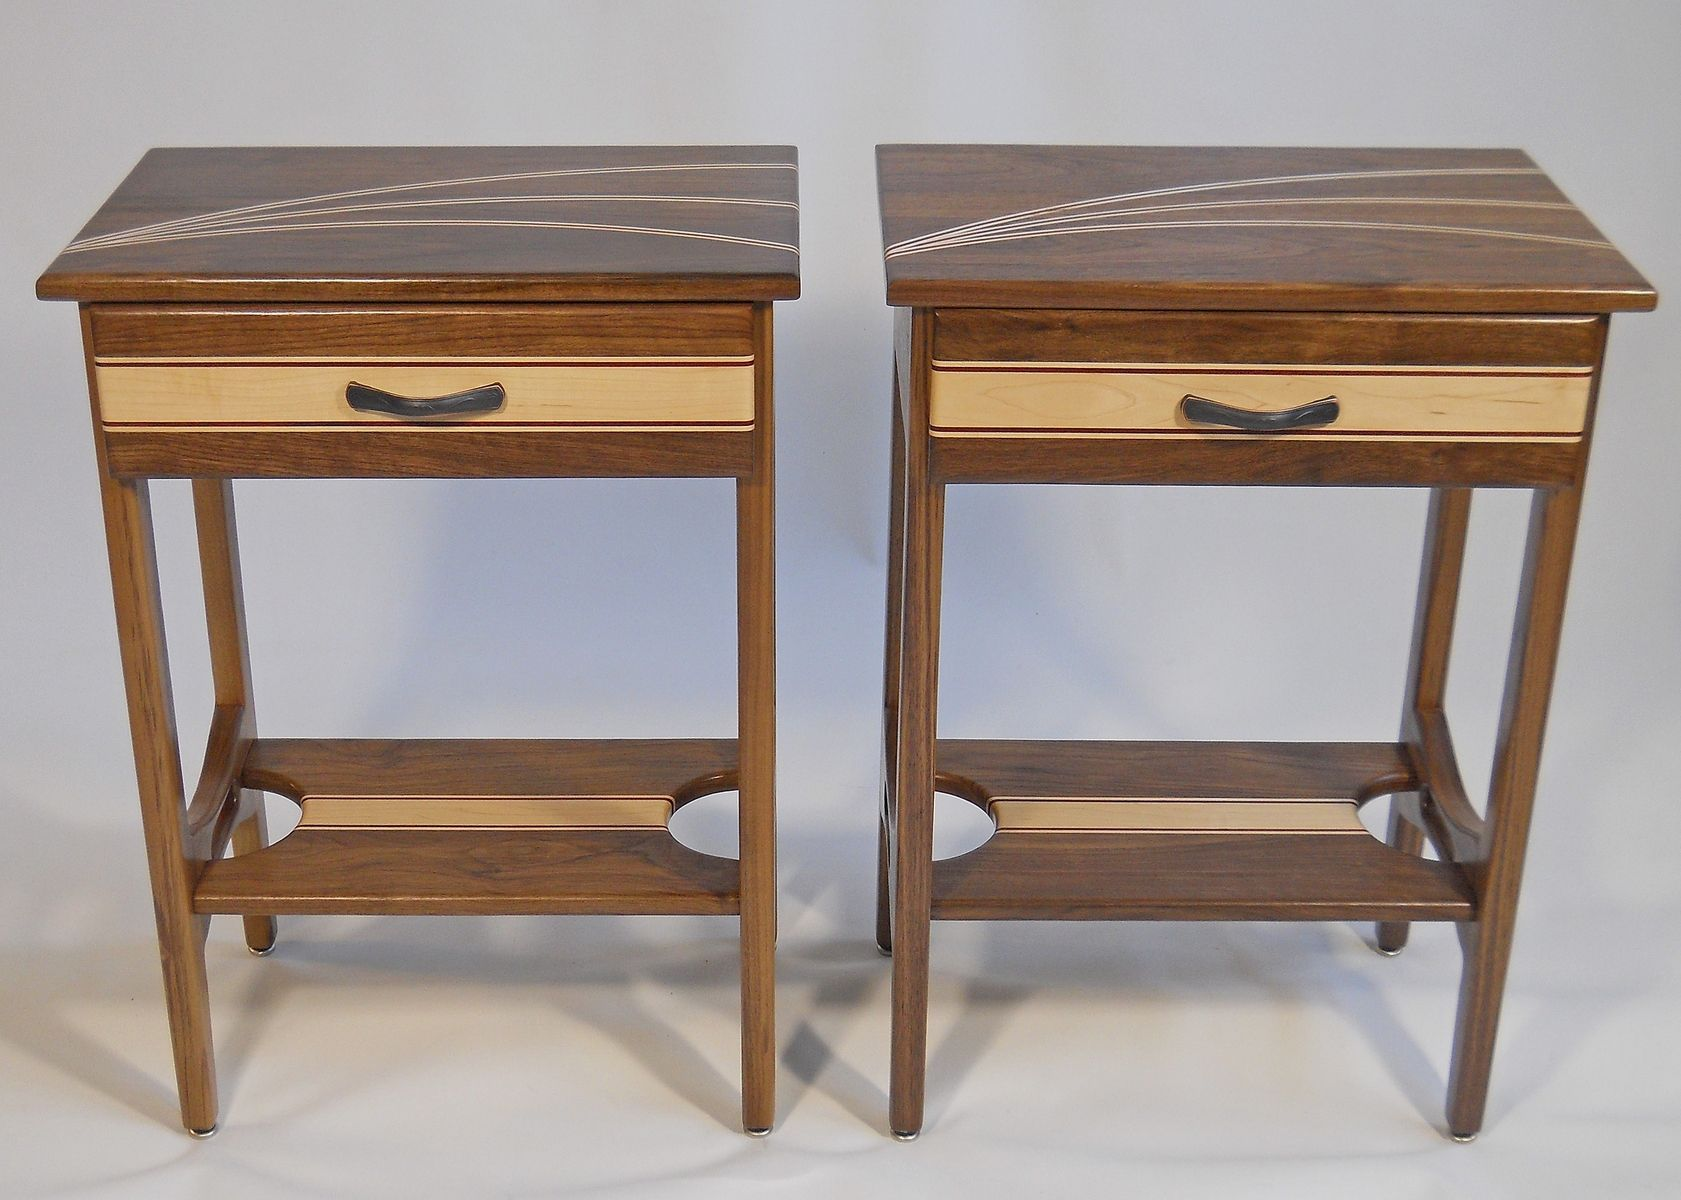 handmade custom end tables creative wood designs dami made wedding table decoration ideas coffee height danish teak low outdoor cool dark cherry and accent occasional with storage